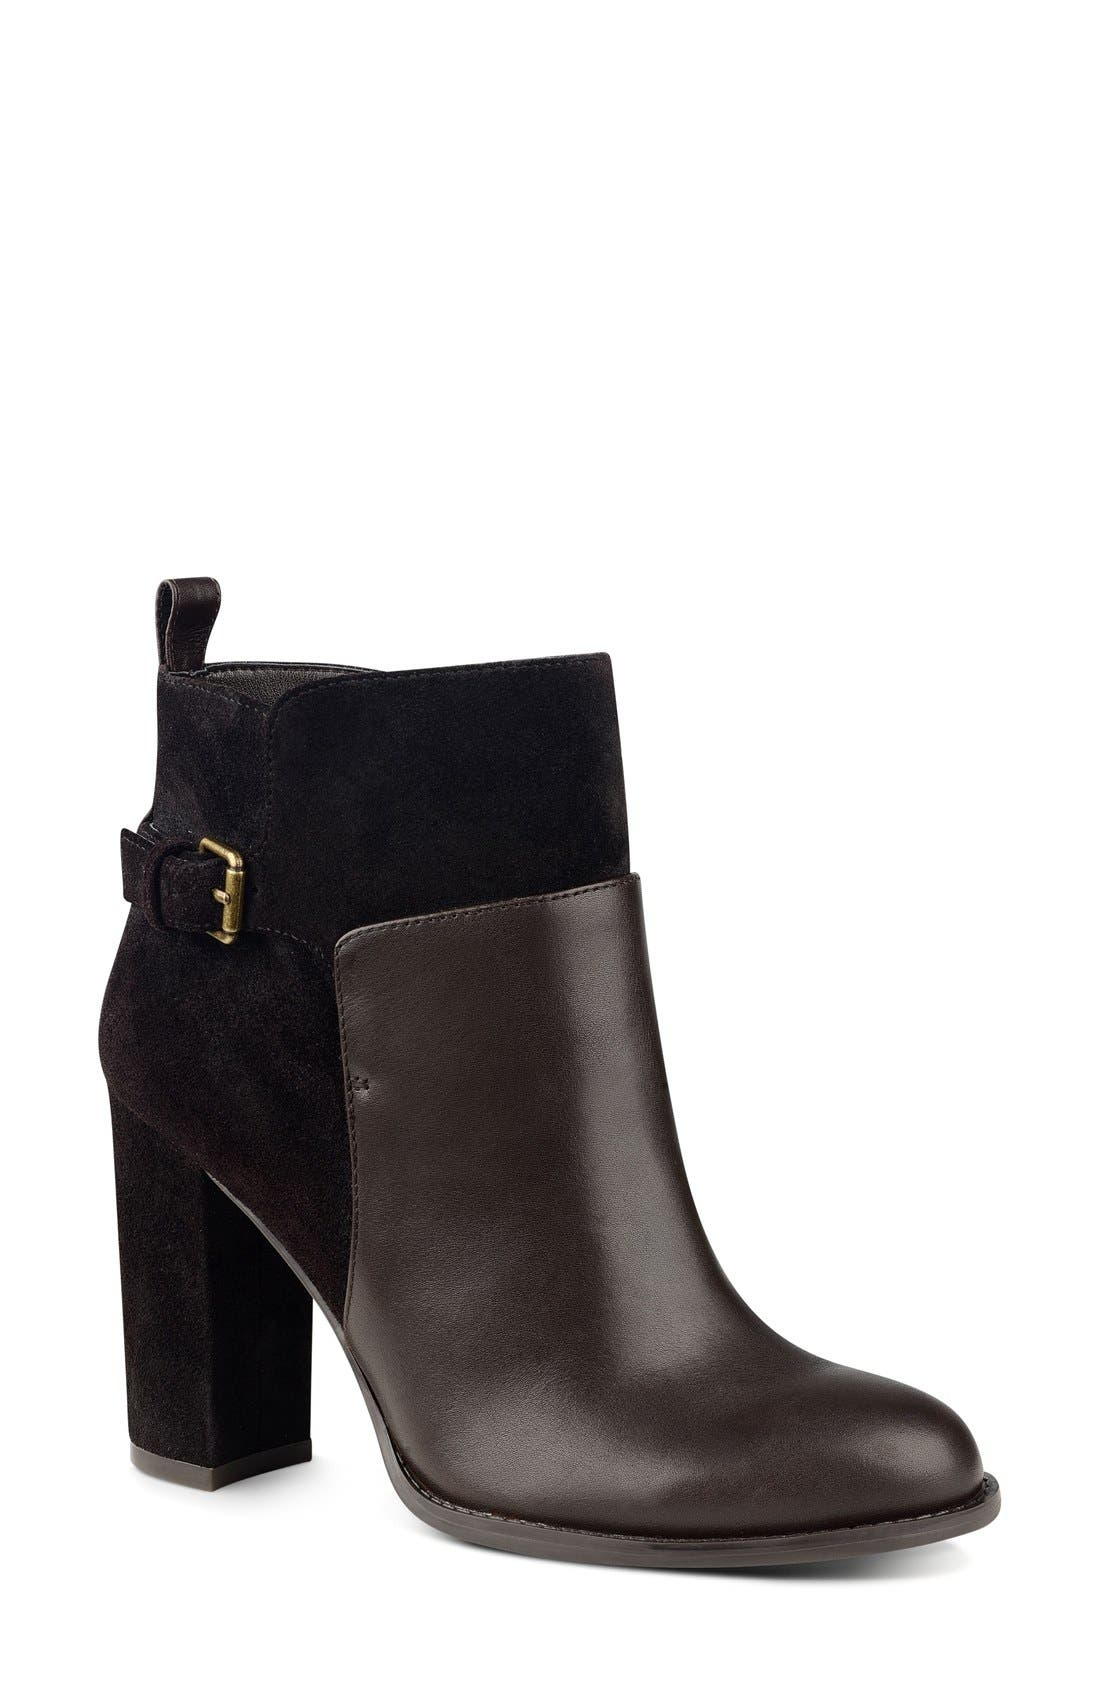 Alternate Image 1 Selected - Nine West 'Quinah' Bootie (Women)